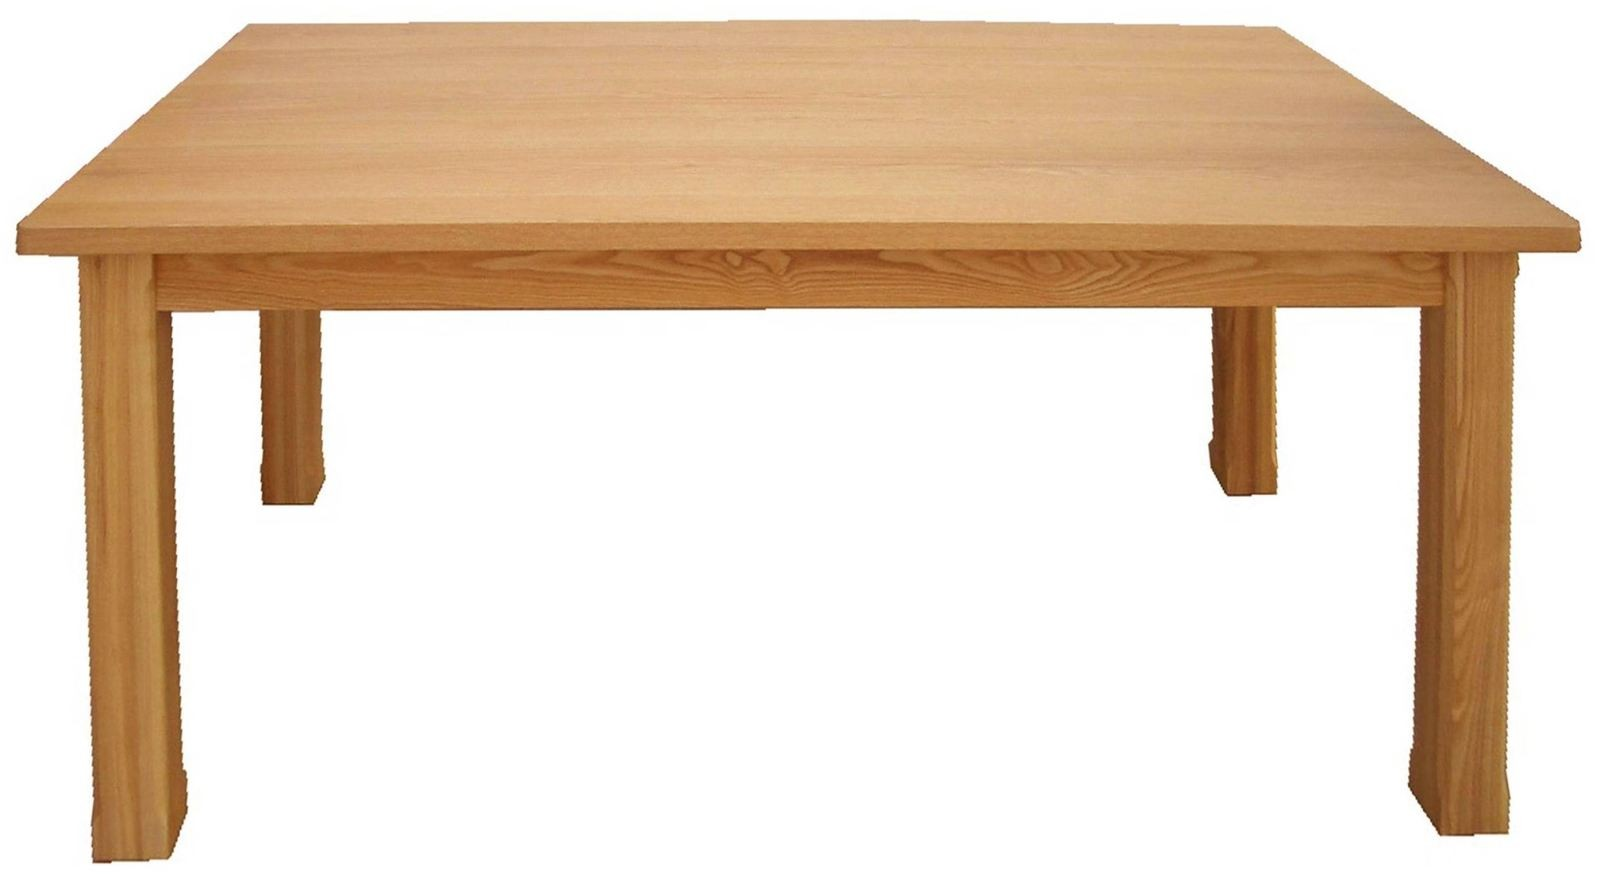 Richmond Ash Large Dining Table Birch Commercial  : cr 010cr 011 from www.birchcommercialfurnishings.co.uk size 1600 x 878 jpeg 97kB